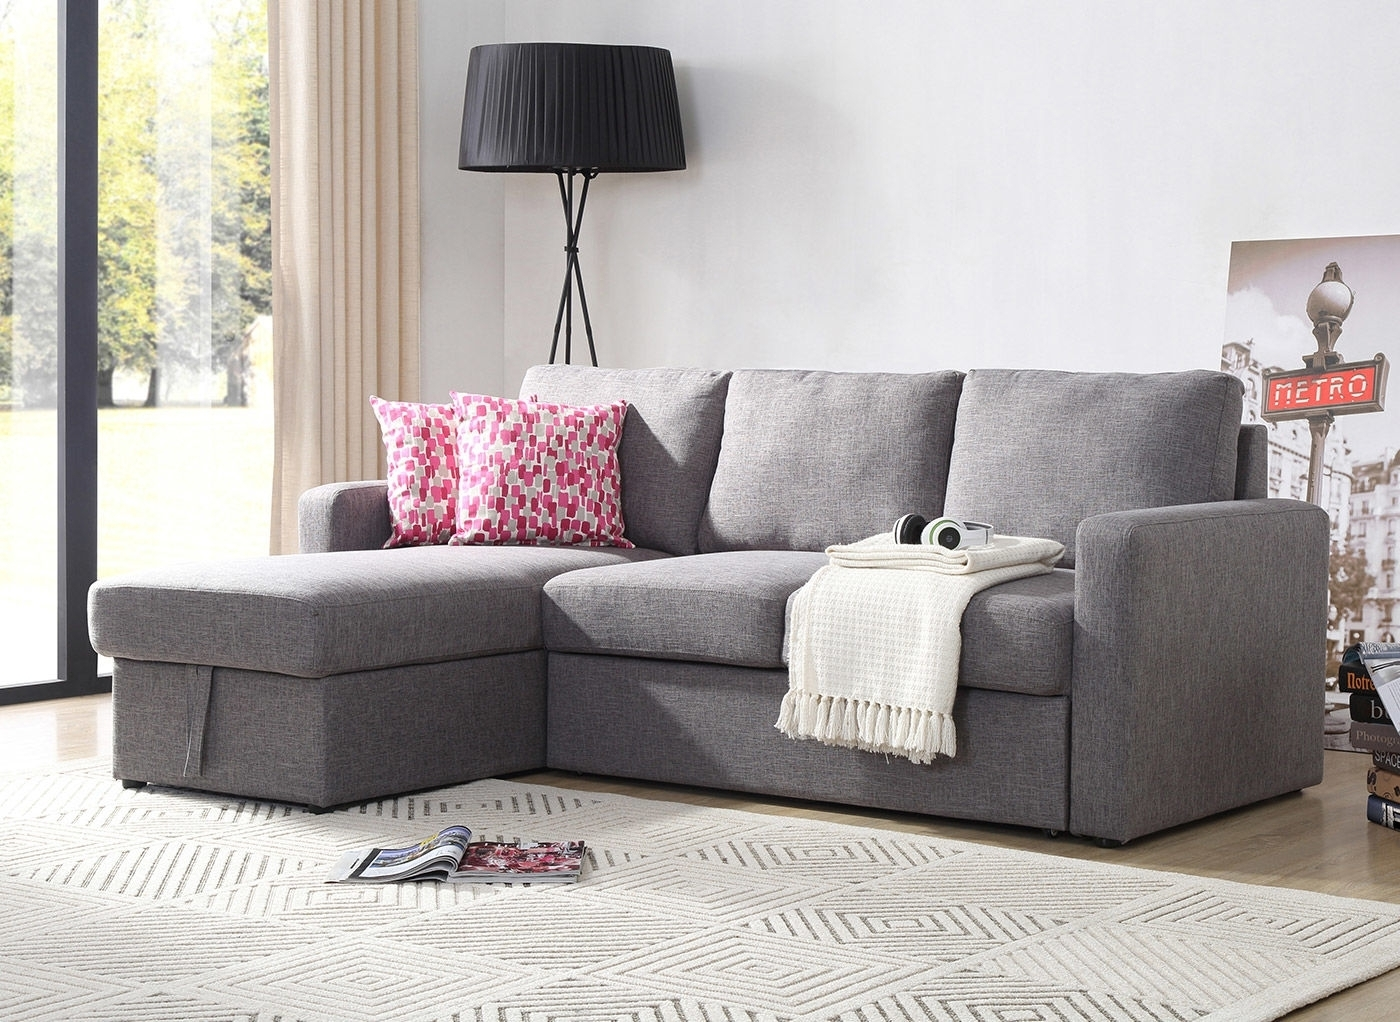 Bad Boy Furniture Sectional Sofas • Sectional Sofa Inside Sectional Sofas At Bad Boy (View 6 of 10)